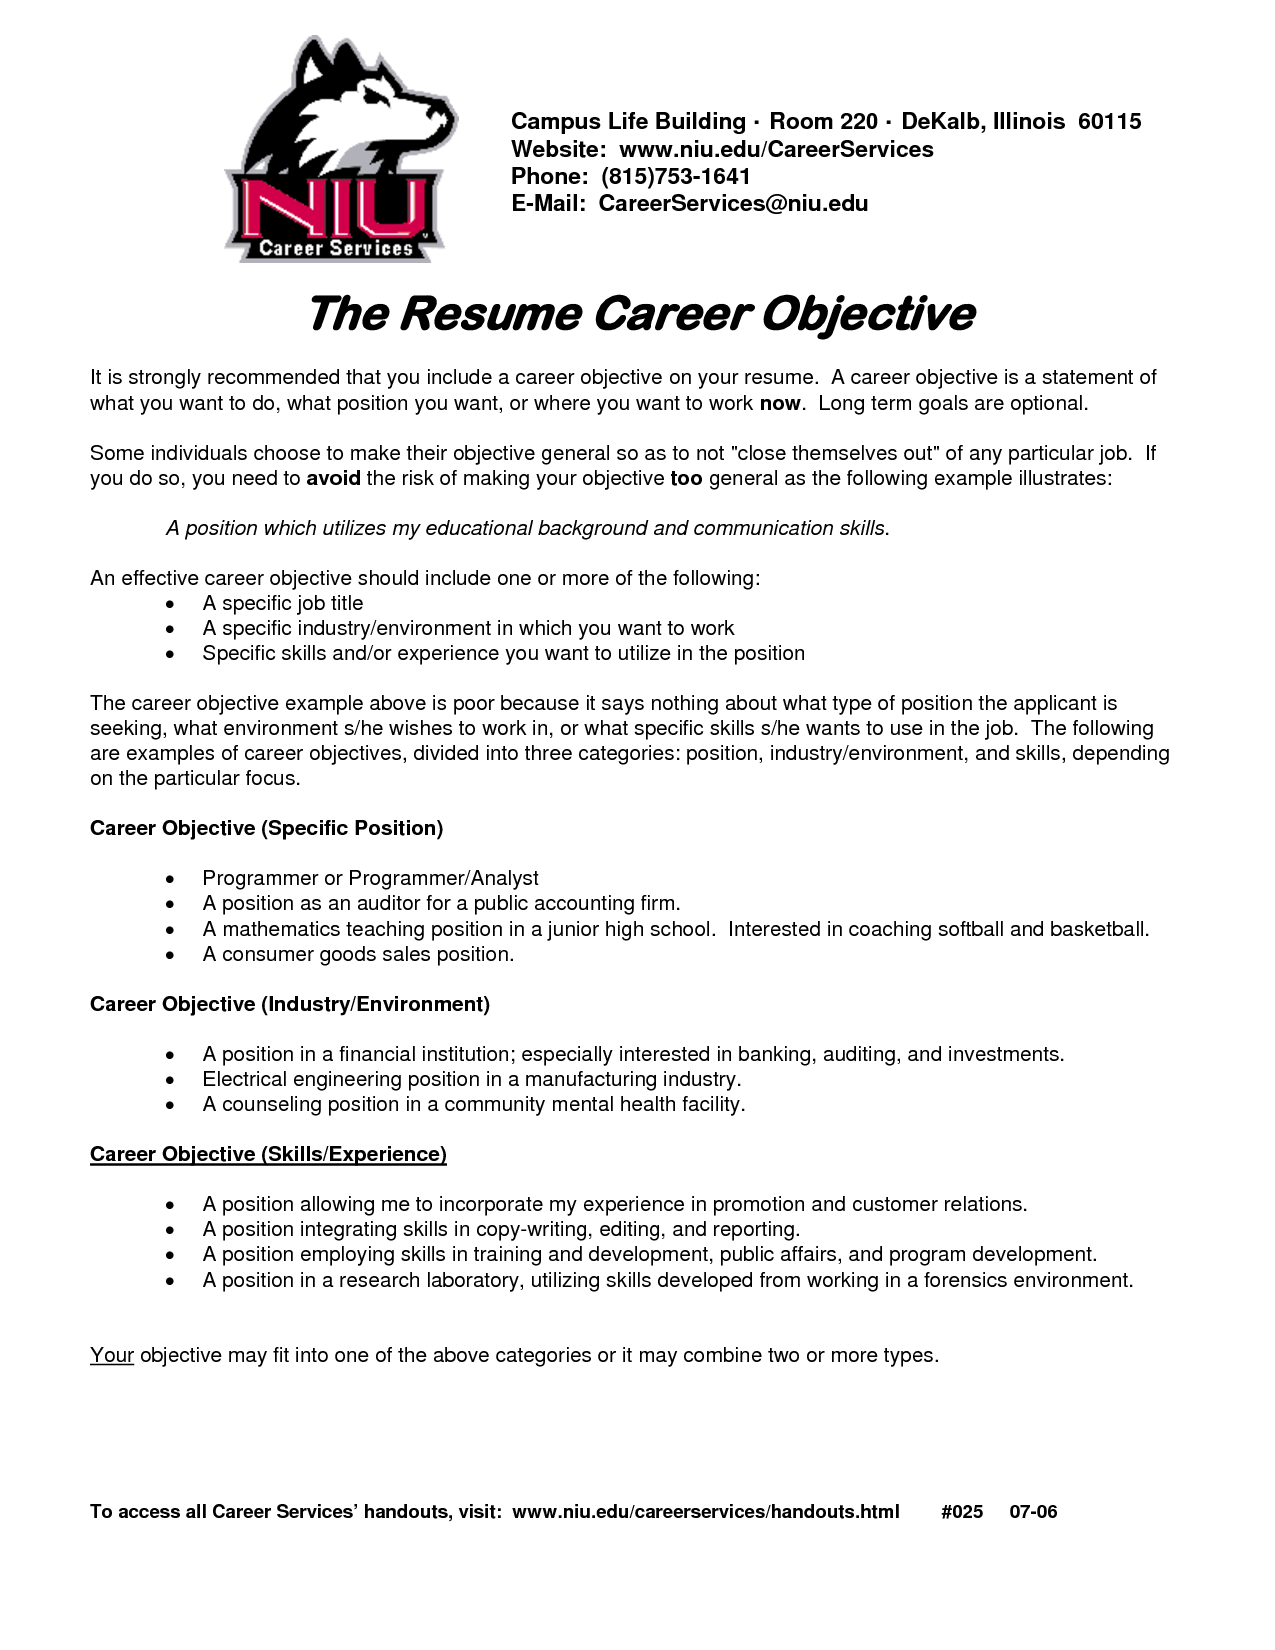 25 Fresh Resume Objective Examples For Any Job Best Resume Examples